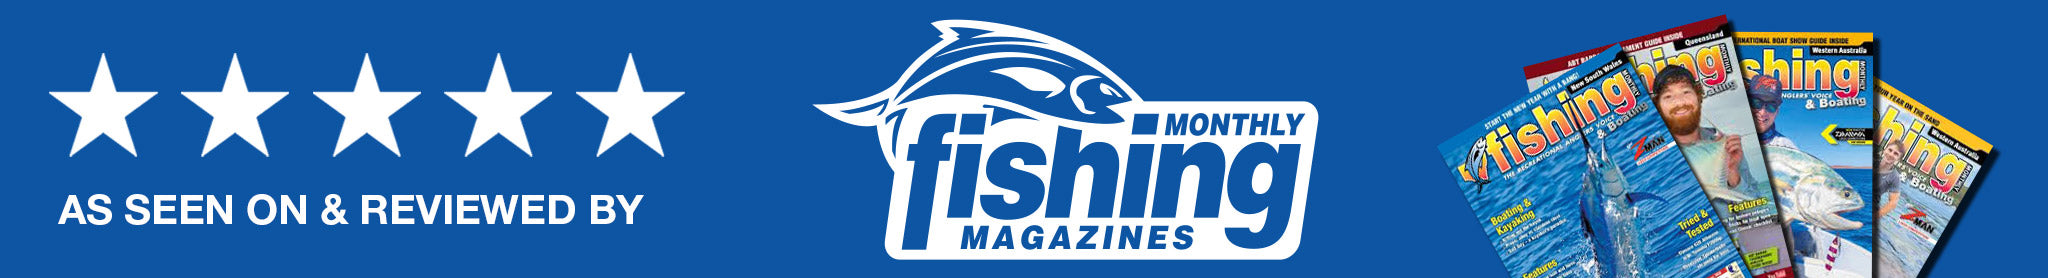 fishingmonthly-mangroveoutdoors-review